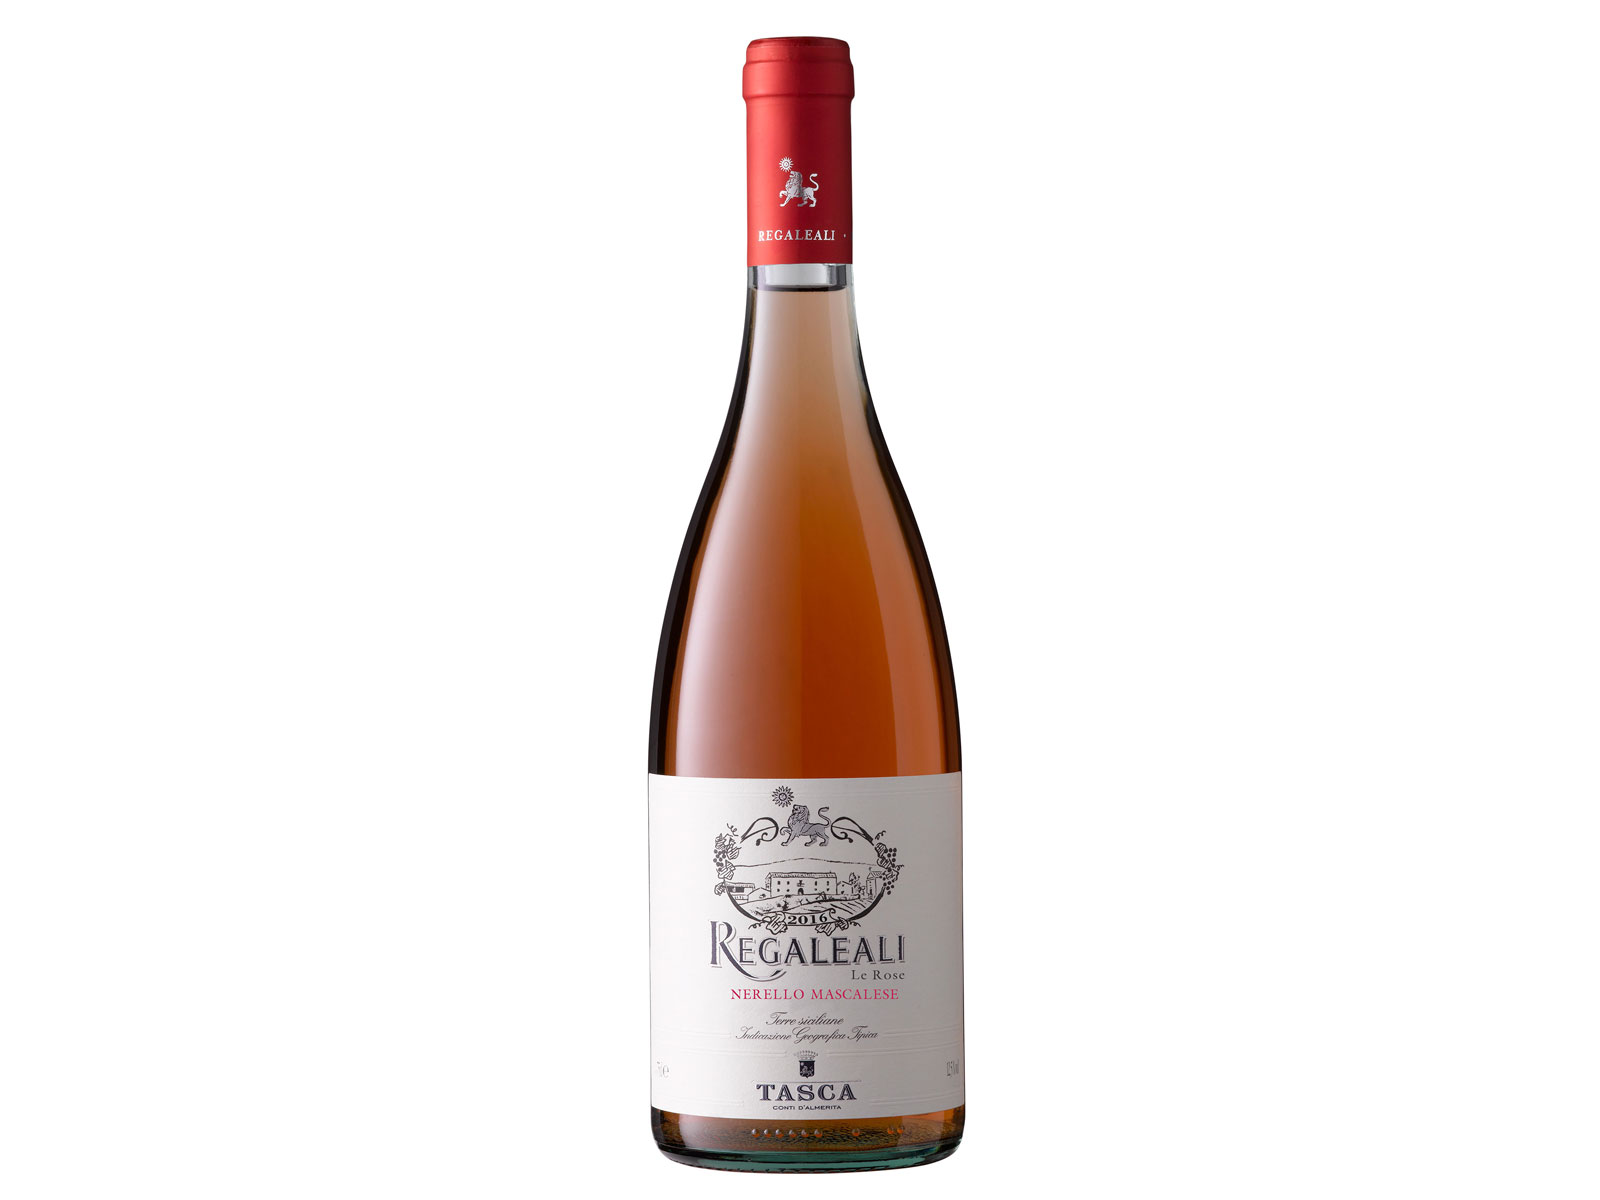 2016 Regaleali Le Rose Terre Siciliane